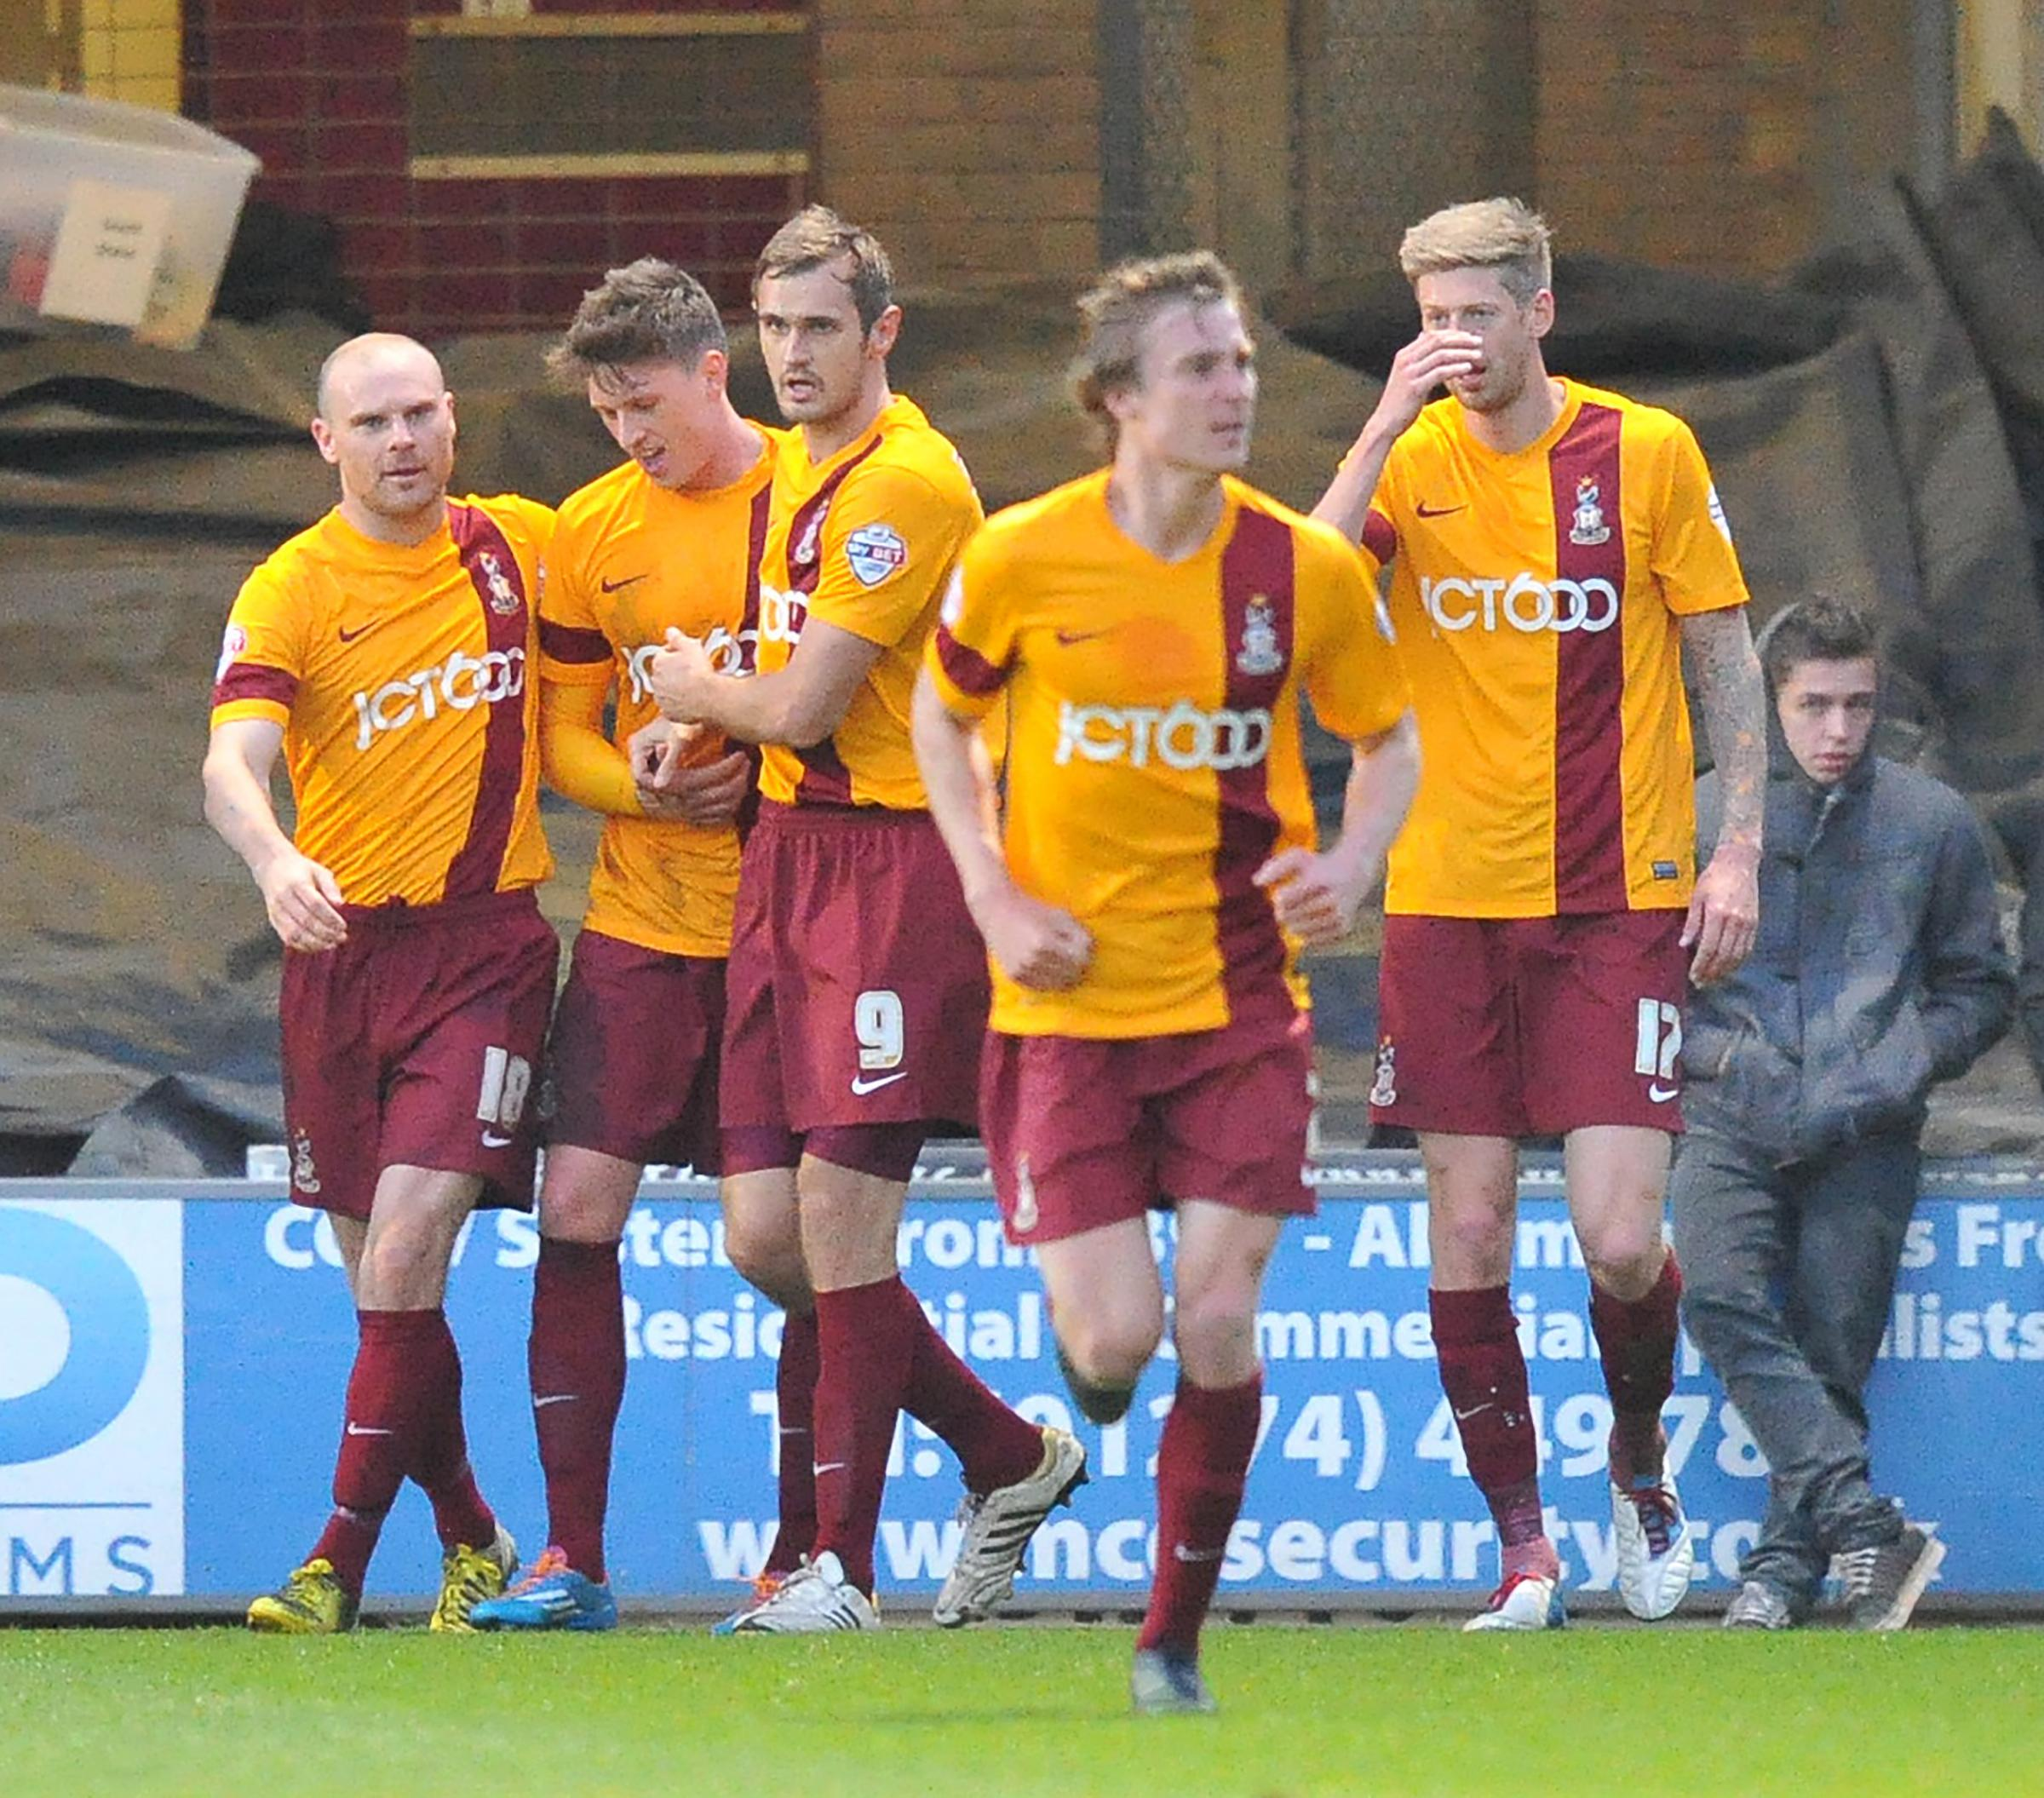 Bantams boss Parkinson can sleep easy after win